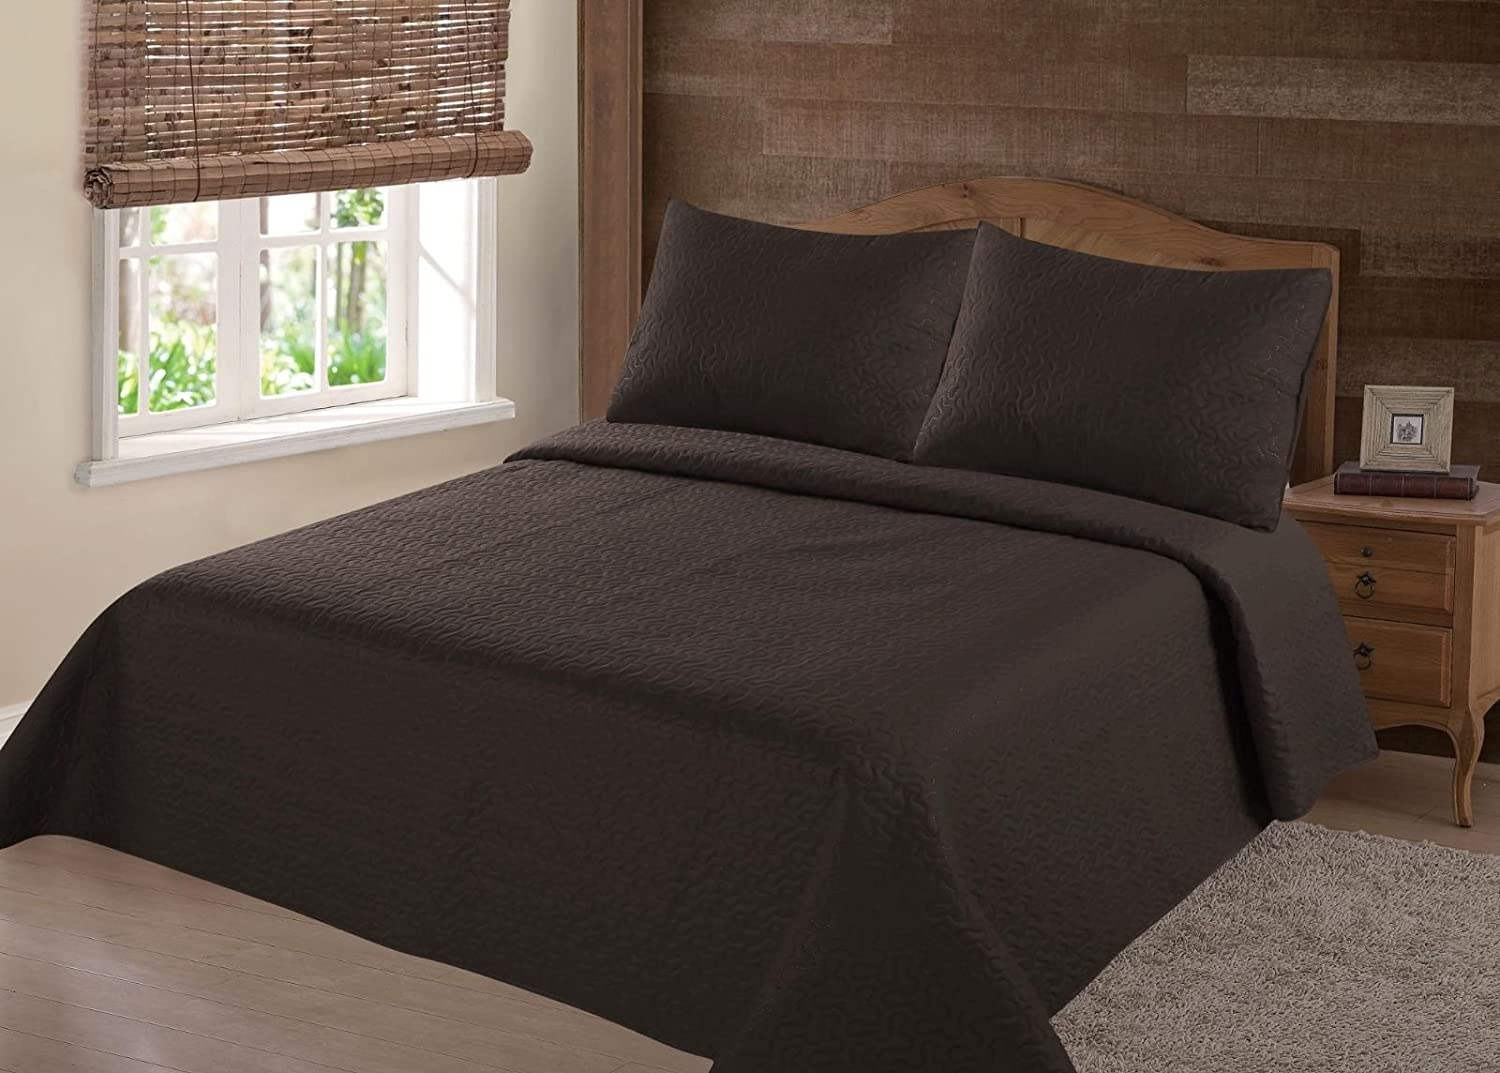 GorgeousHomeLinen (NENA) Brown Coffee Solid Hypoallergenic Quilt Bedspread Bed Bedding Coverlets Cover Set with Pillow Cases Size inc: Twin (2pc) Full Queen King (3pc) (Queen)